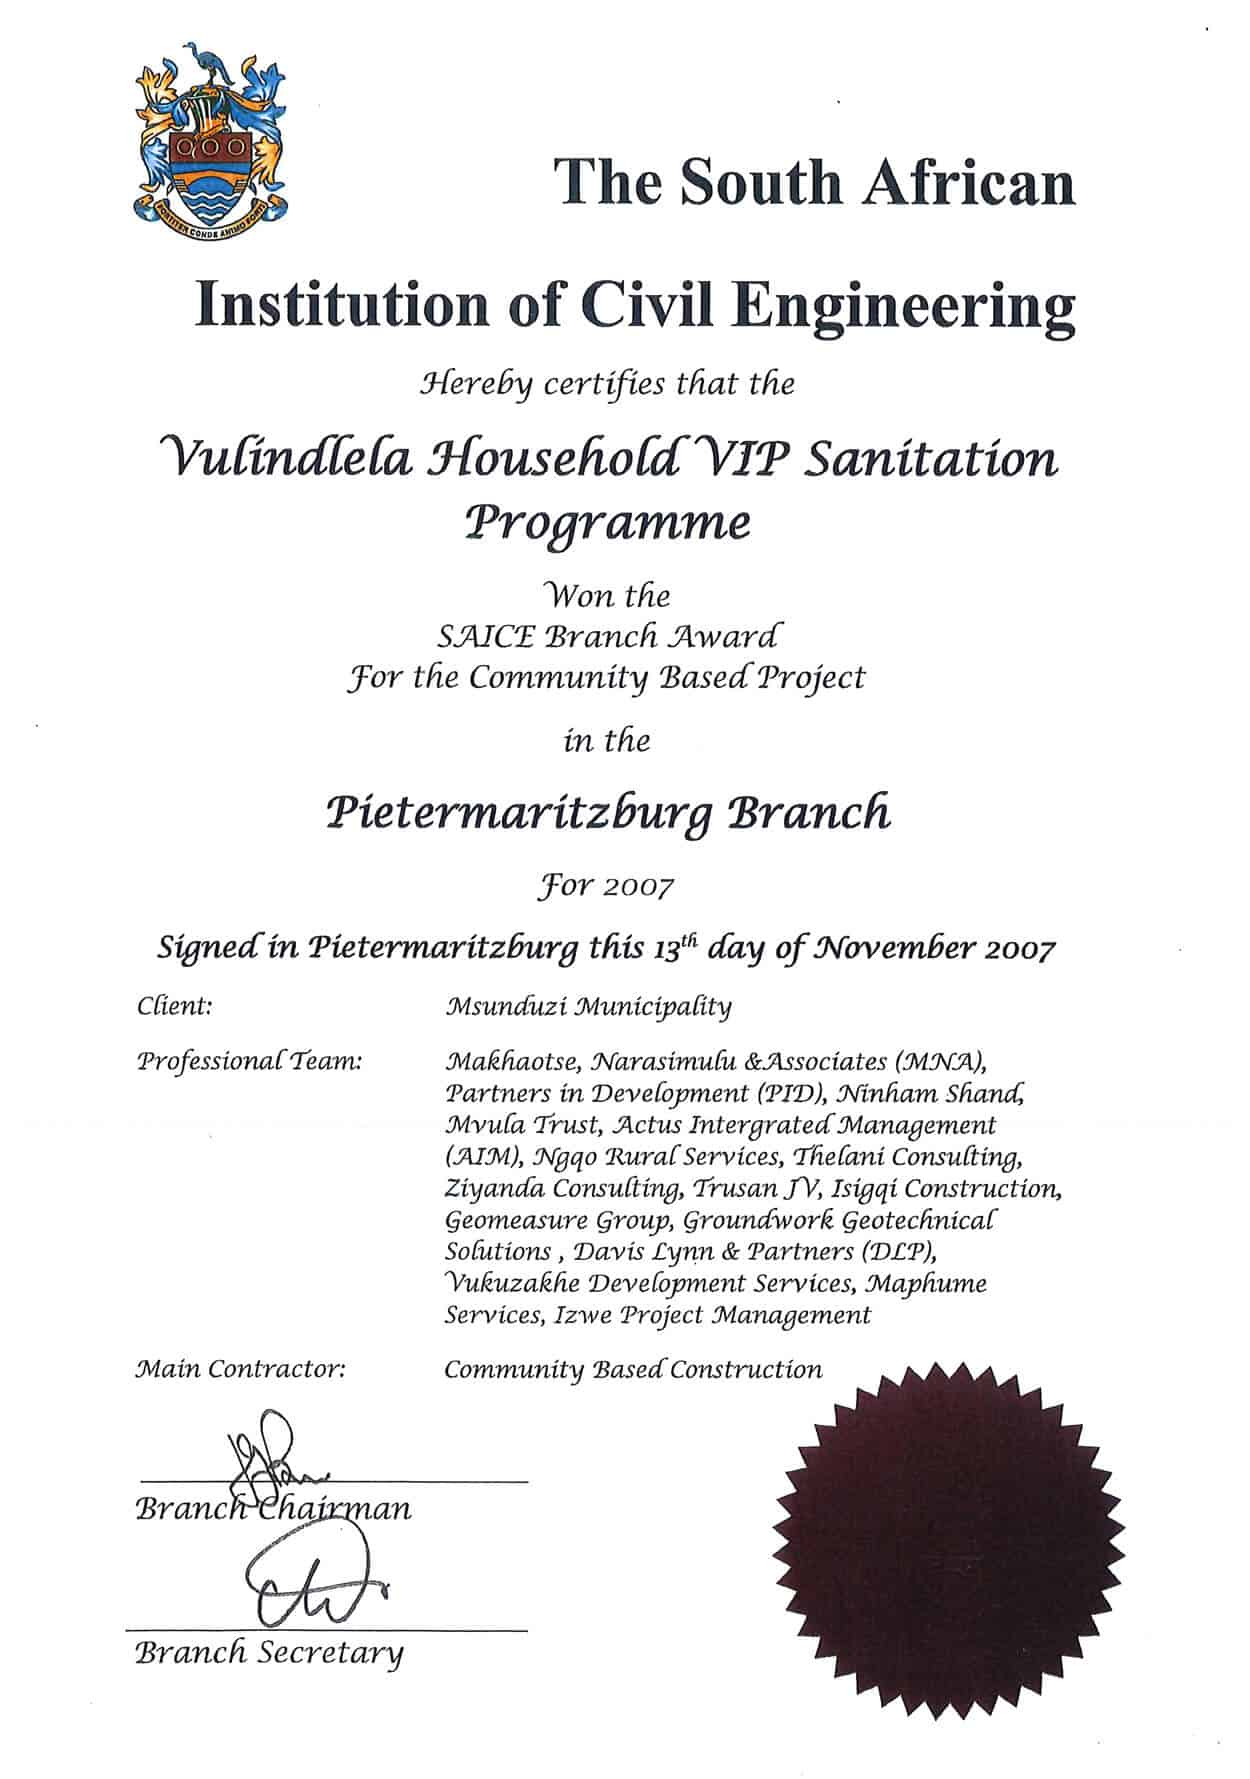 The South African Institute of Civil Engineering Maunduzi Municipality Sanitation Programme